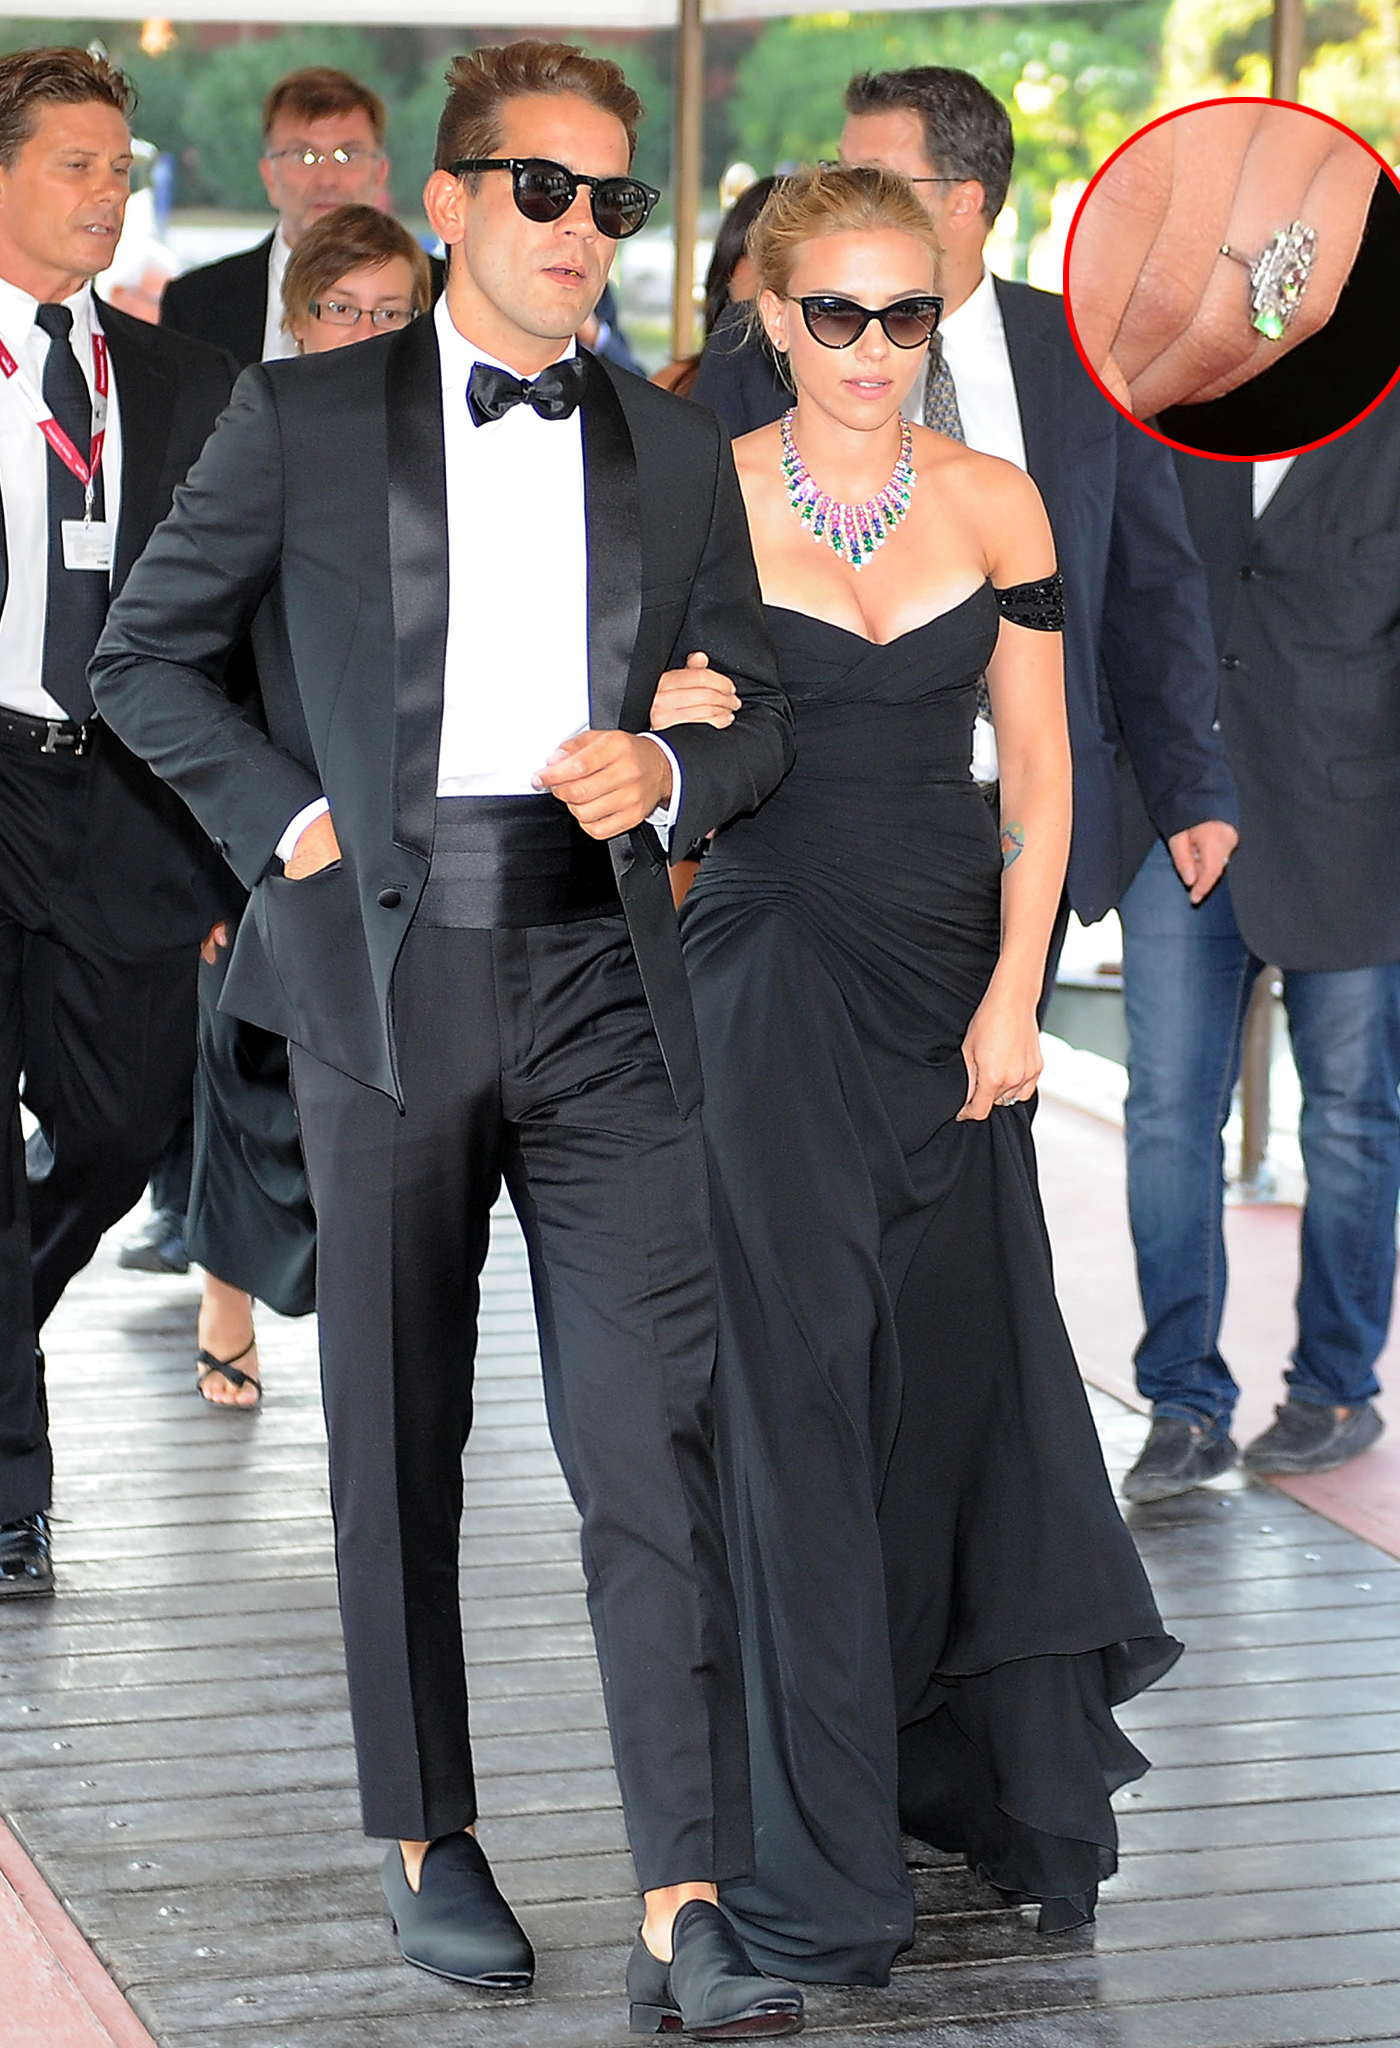 Scarlett Johansson and Romain Dauriac at the Venice Film Festival on 9/3/13 (INFphoto.com/WireImage)